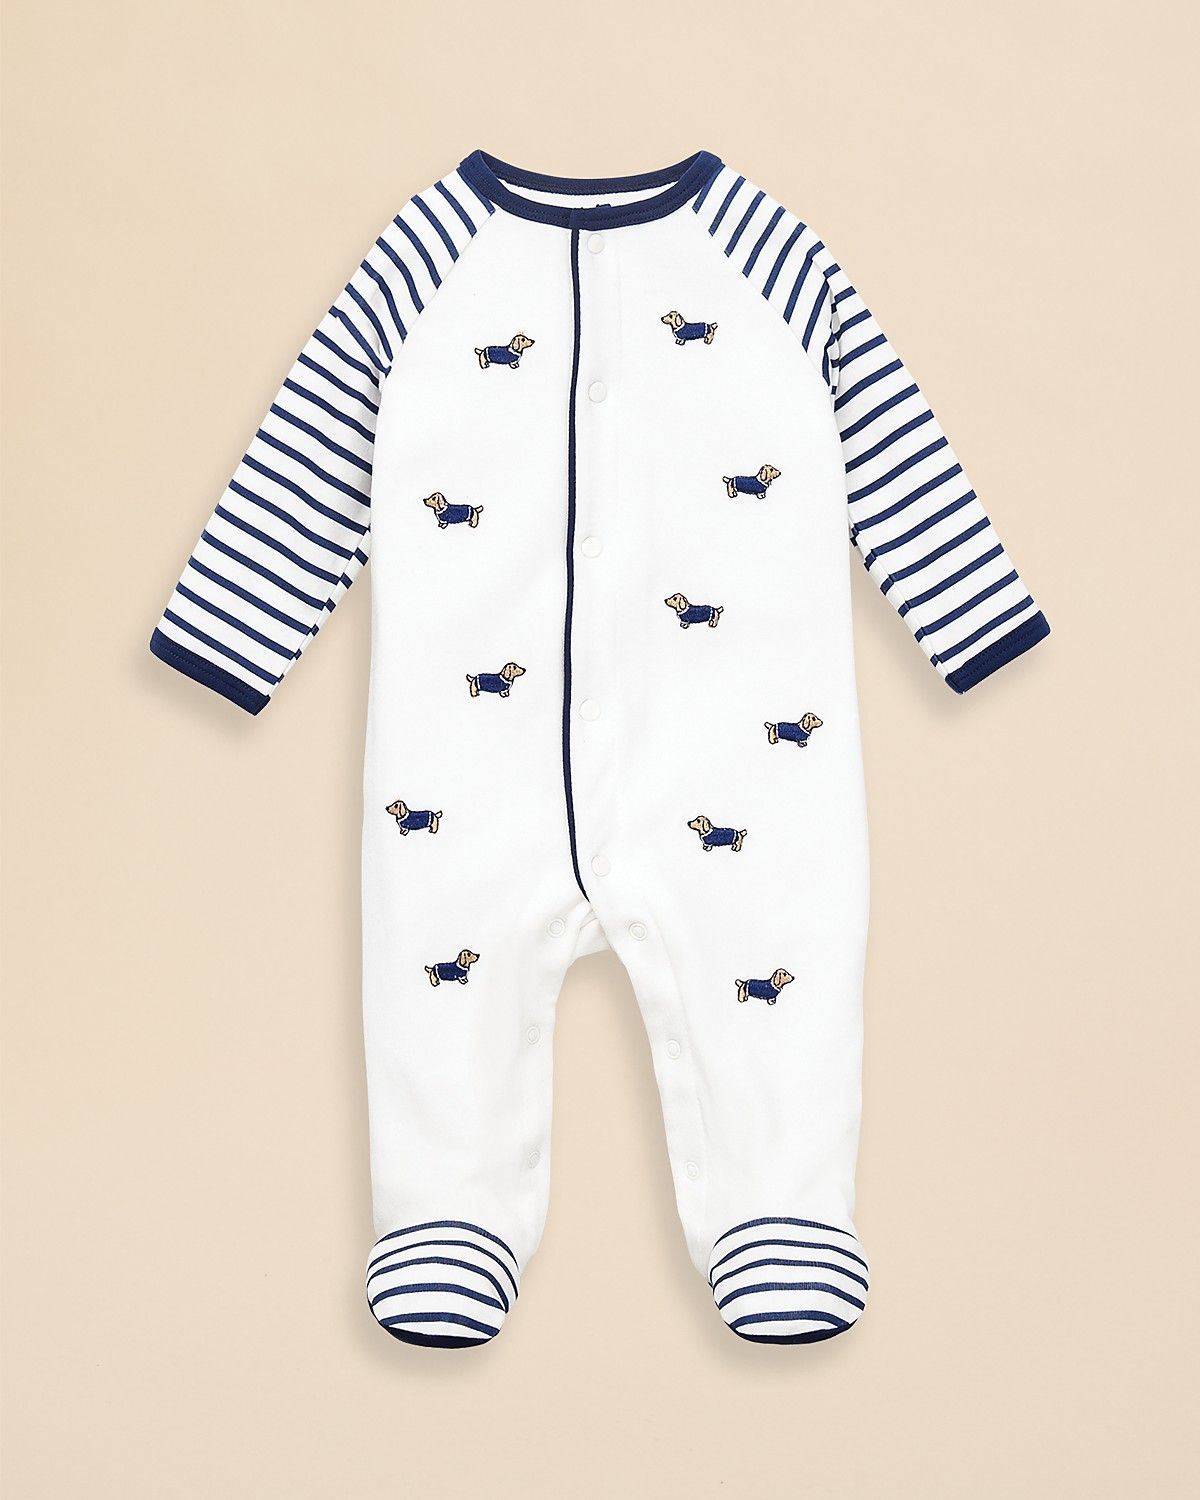 69c36f9e85d8 Little Me Infant Boys  Dachshund Footie - Sizes 0-9 Months ...